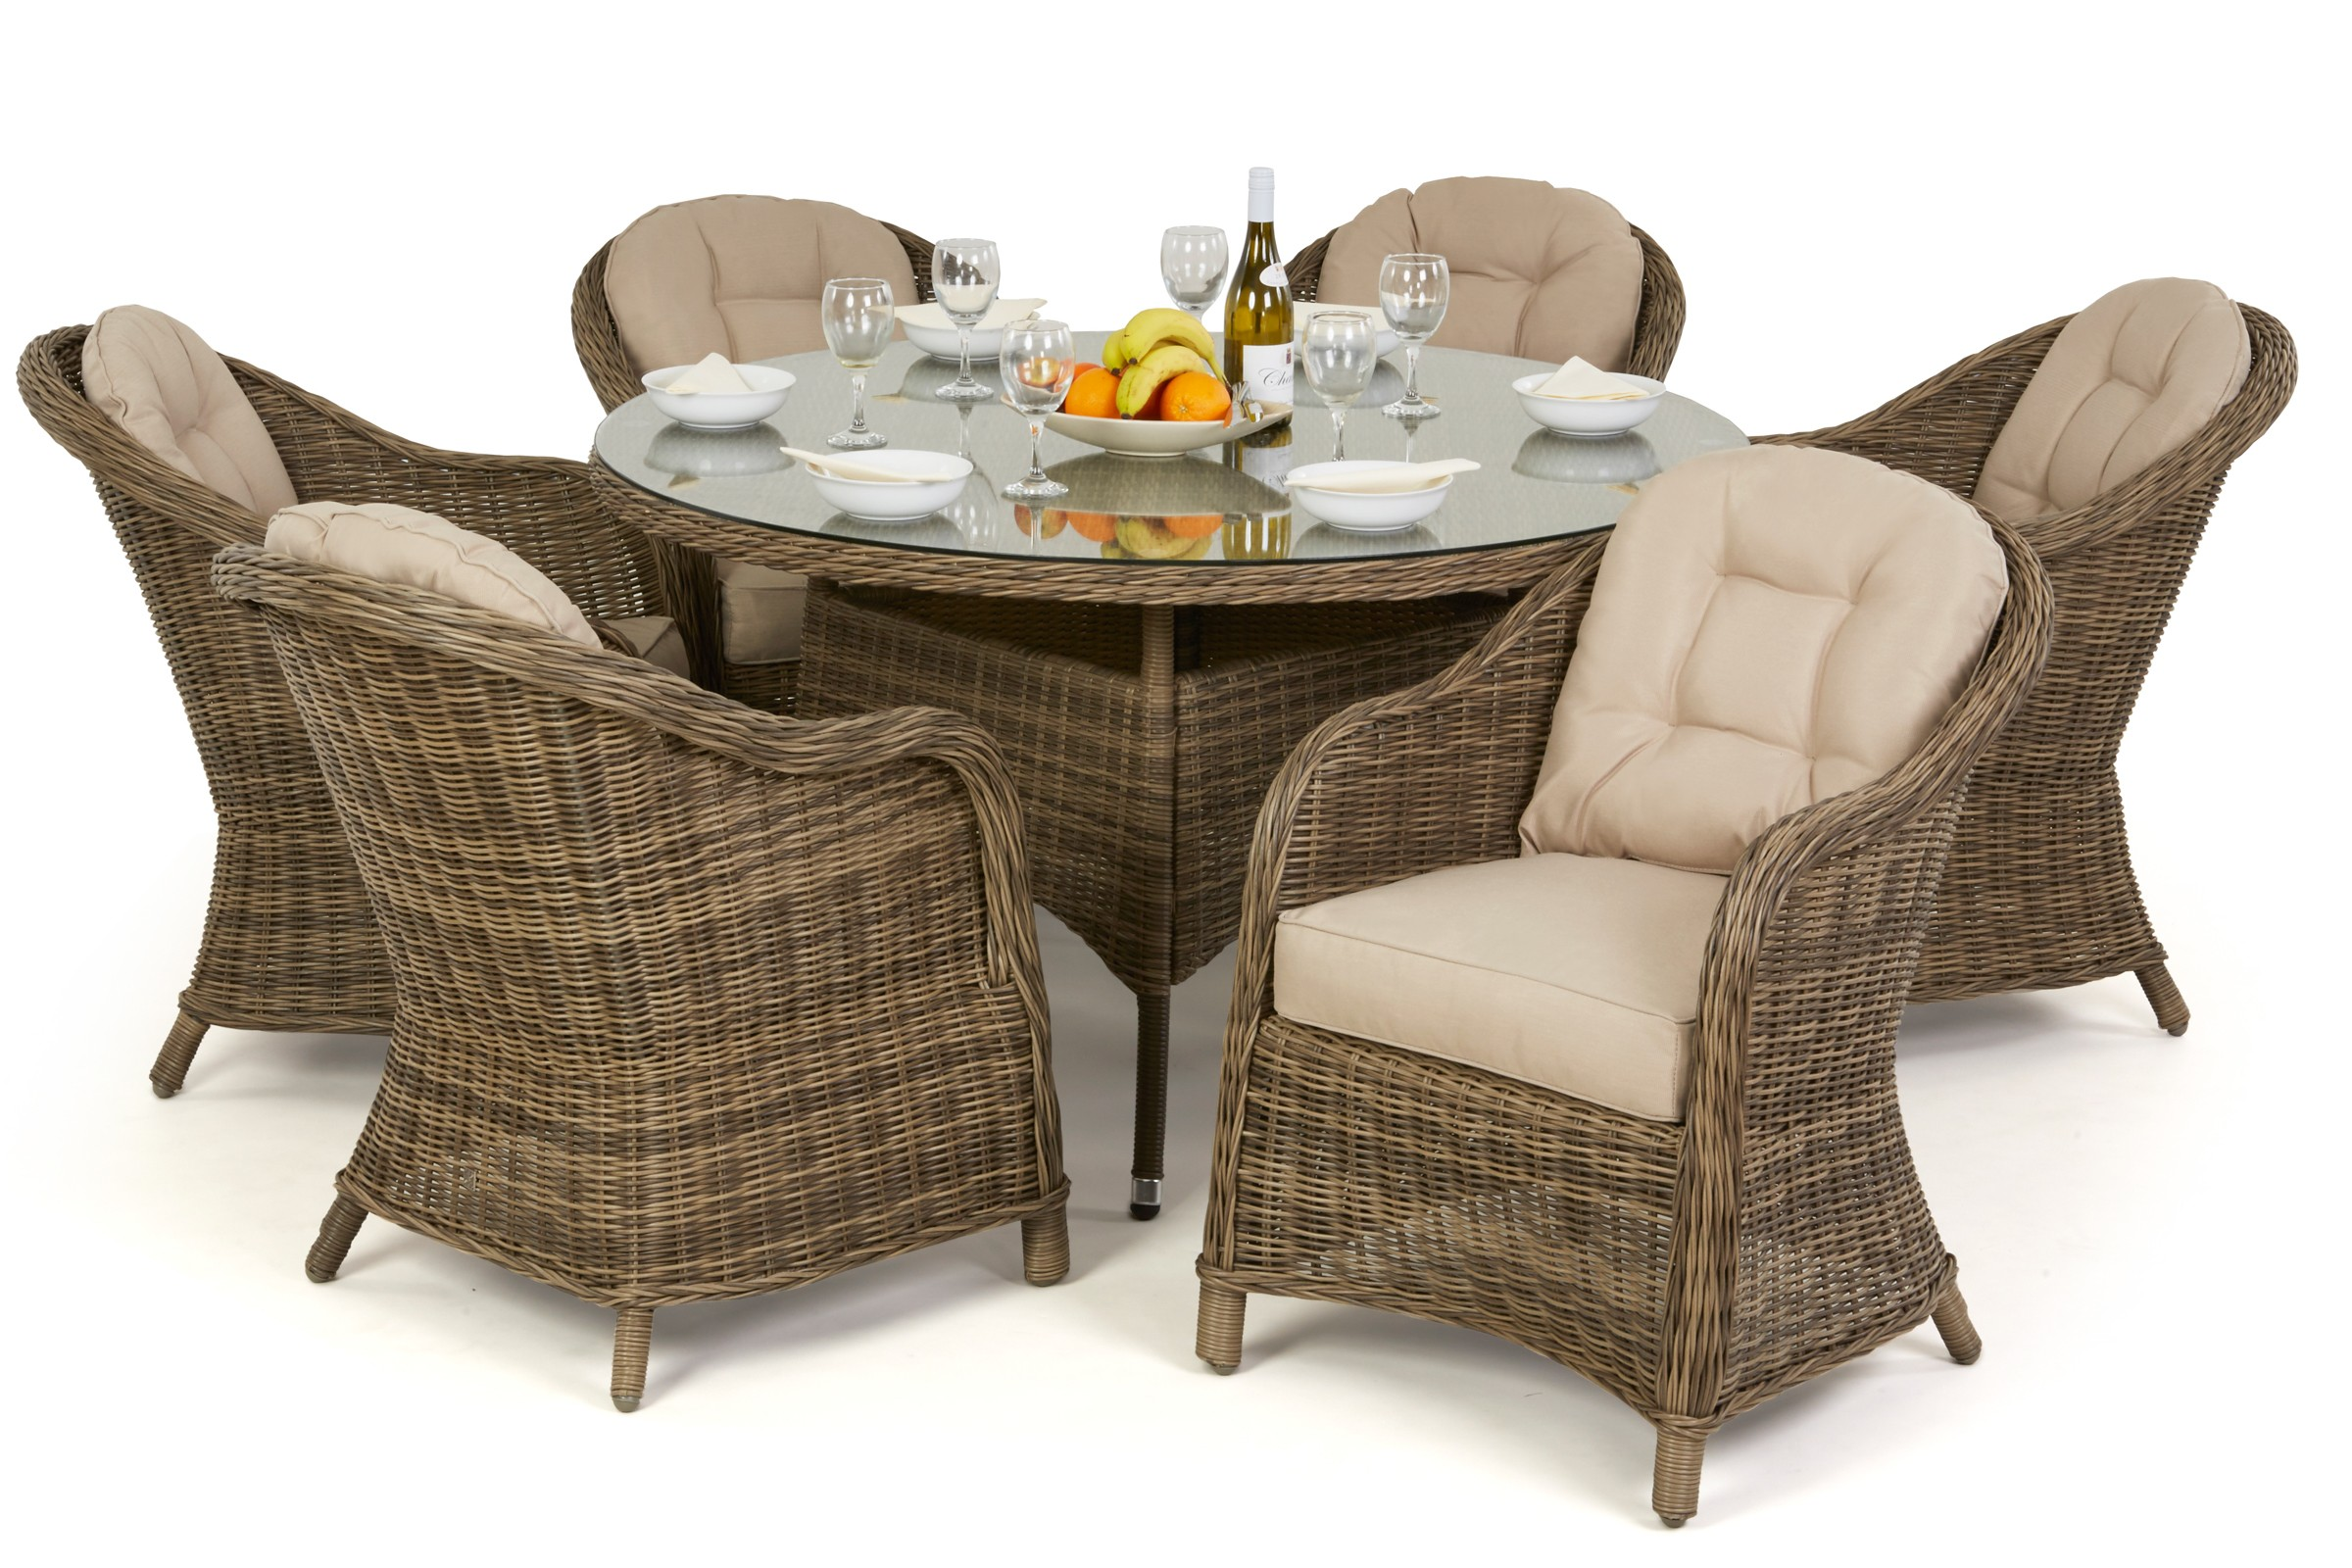 Maze Rattan Winchester 6 seat Round Patio Furniture Set With Rounded Chairs